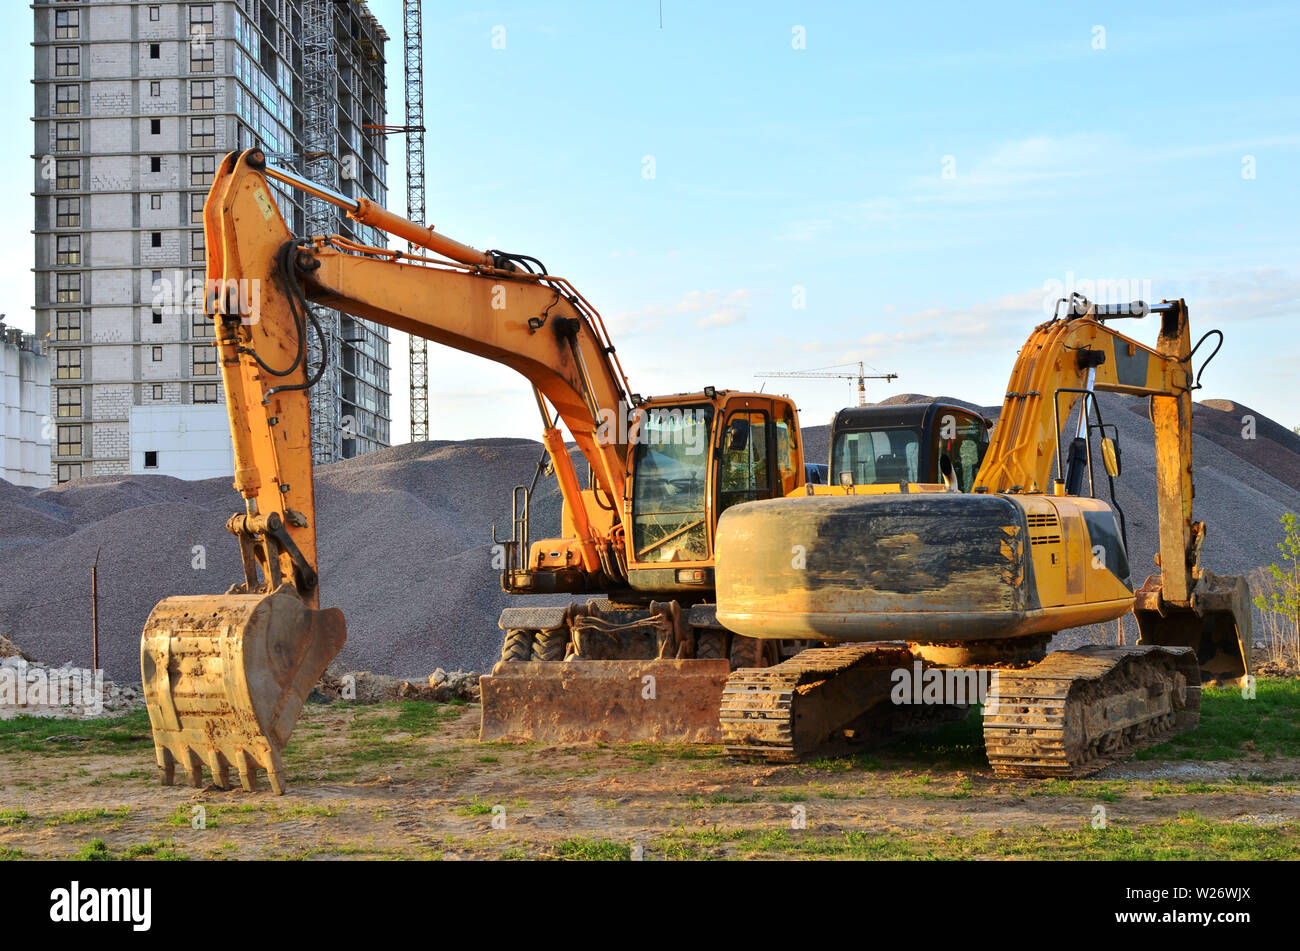 Wheel and tracked heavy excavators working at construction site. hydraulic excavator crane at building site on sunny day - Image - Stock Image